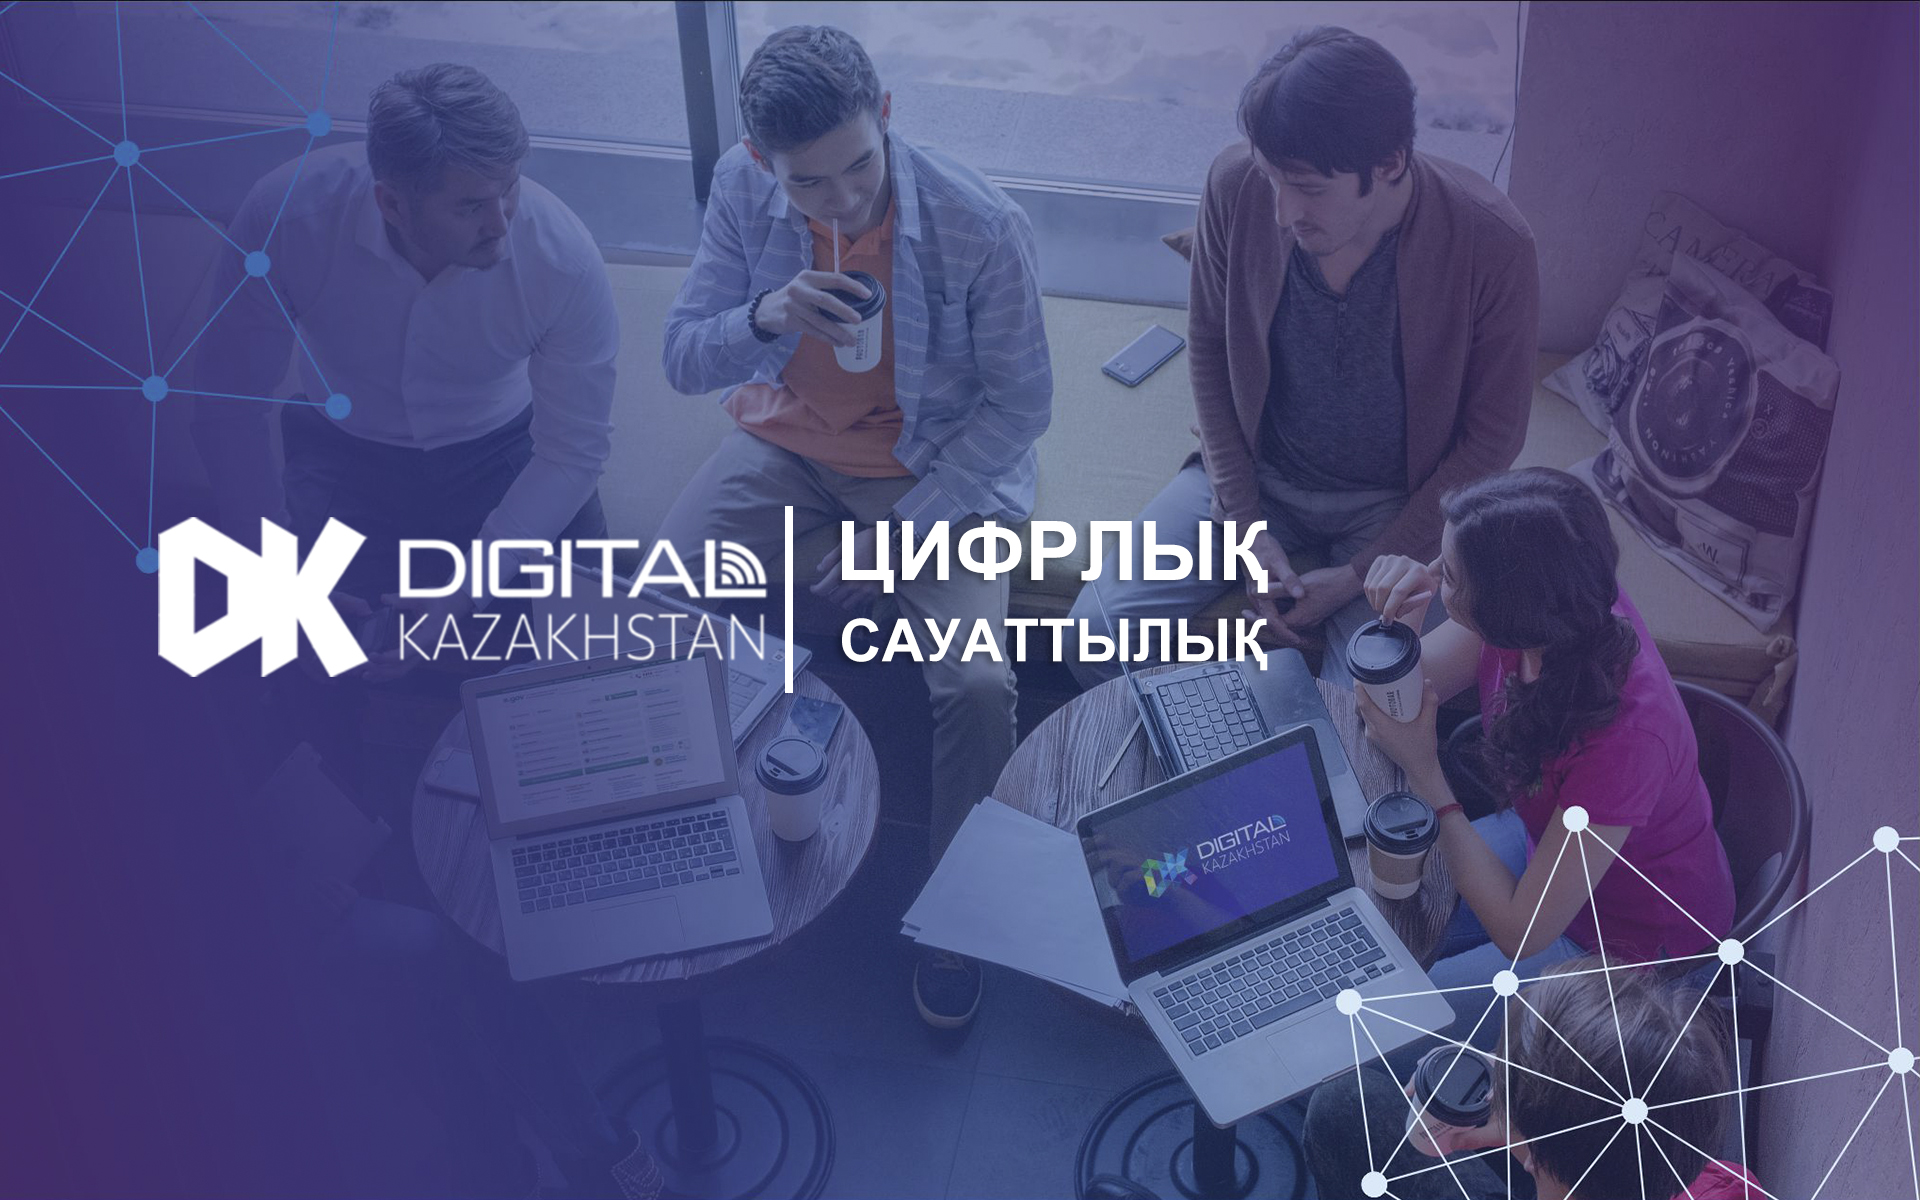 We invite you to digital literacy courses!